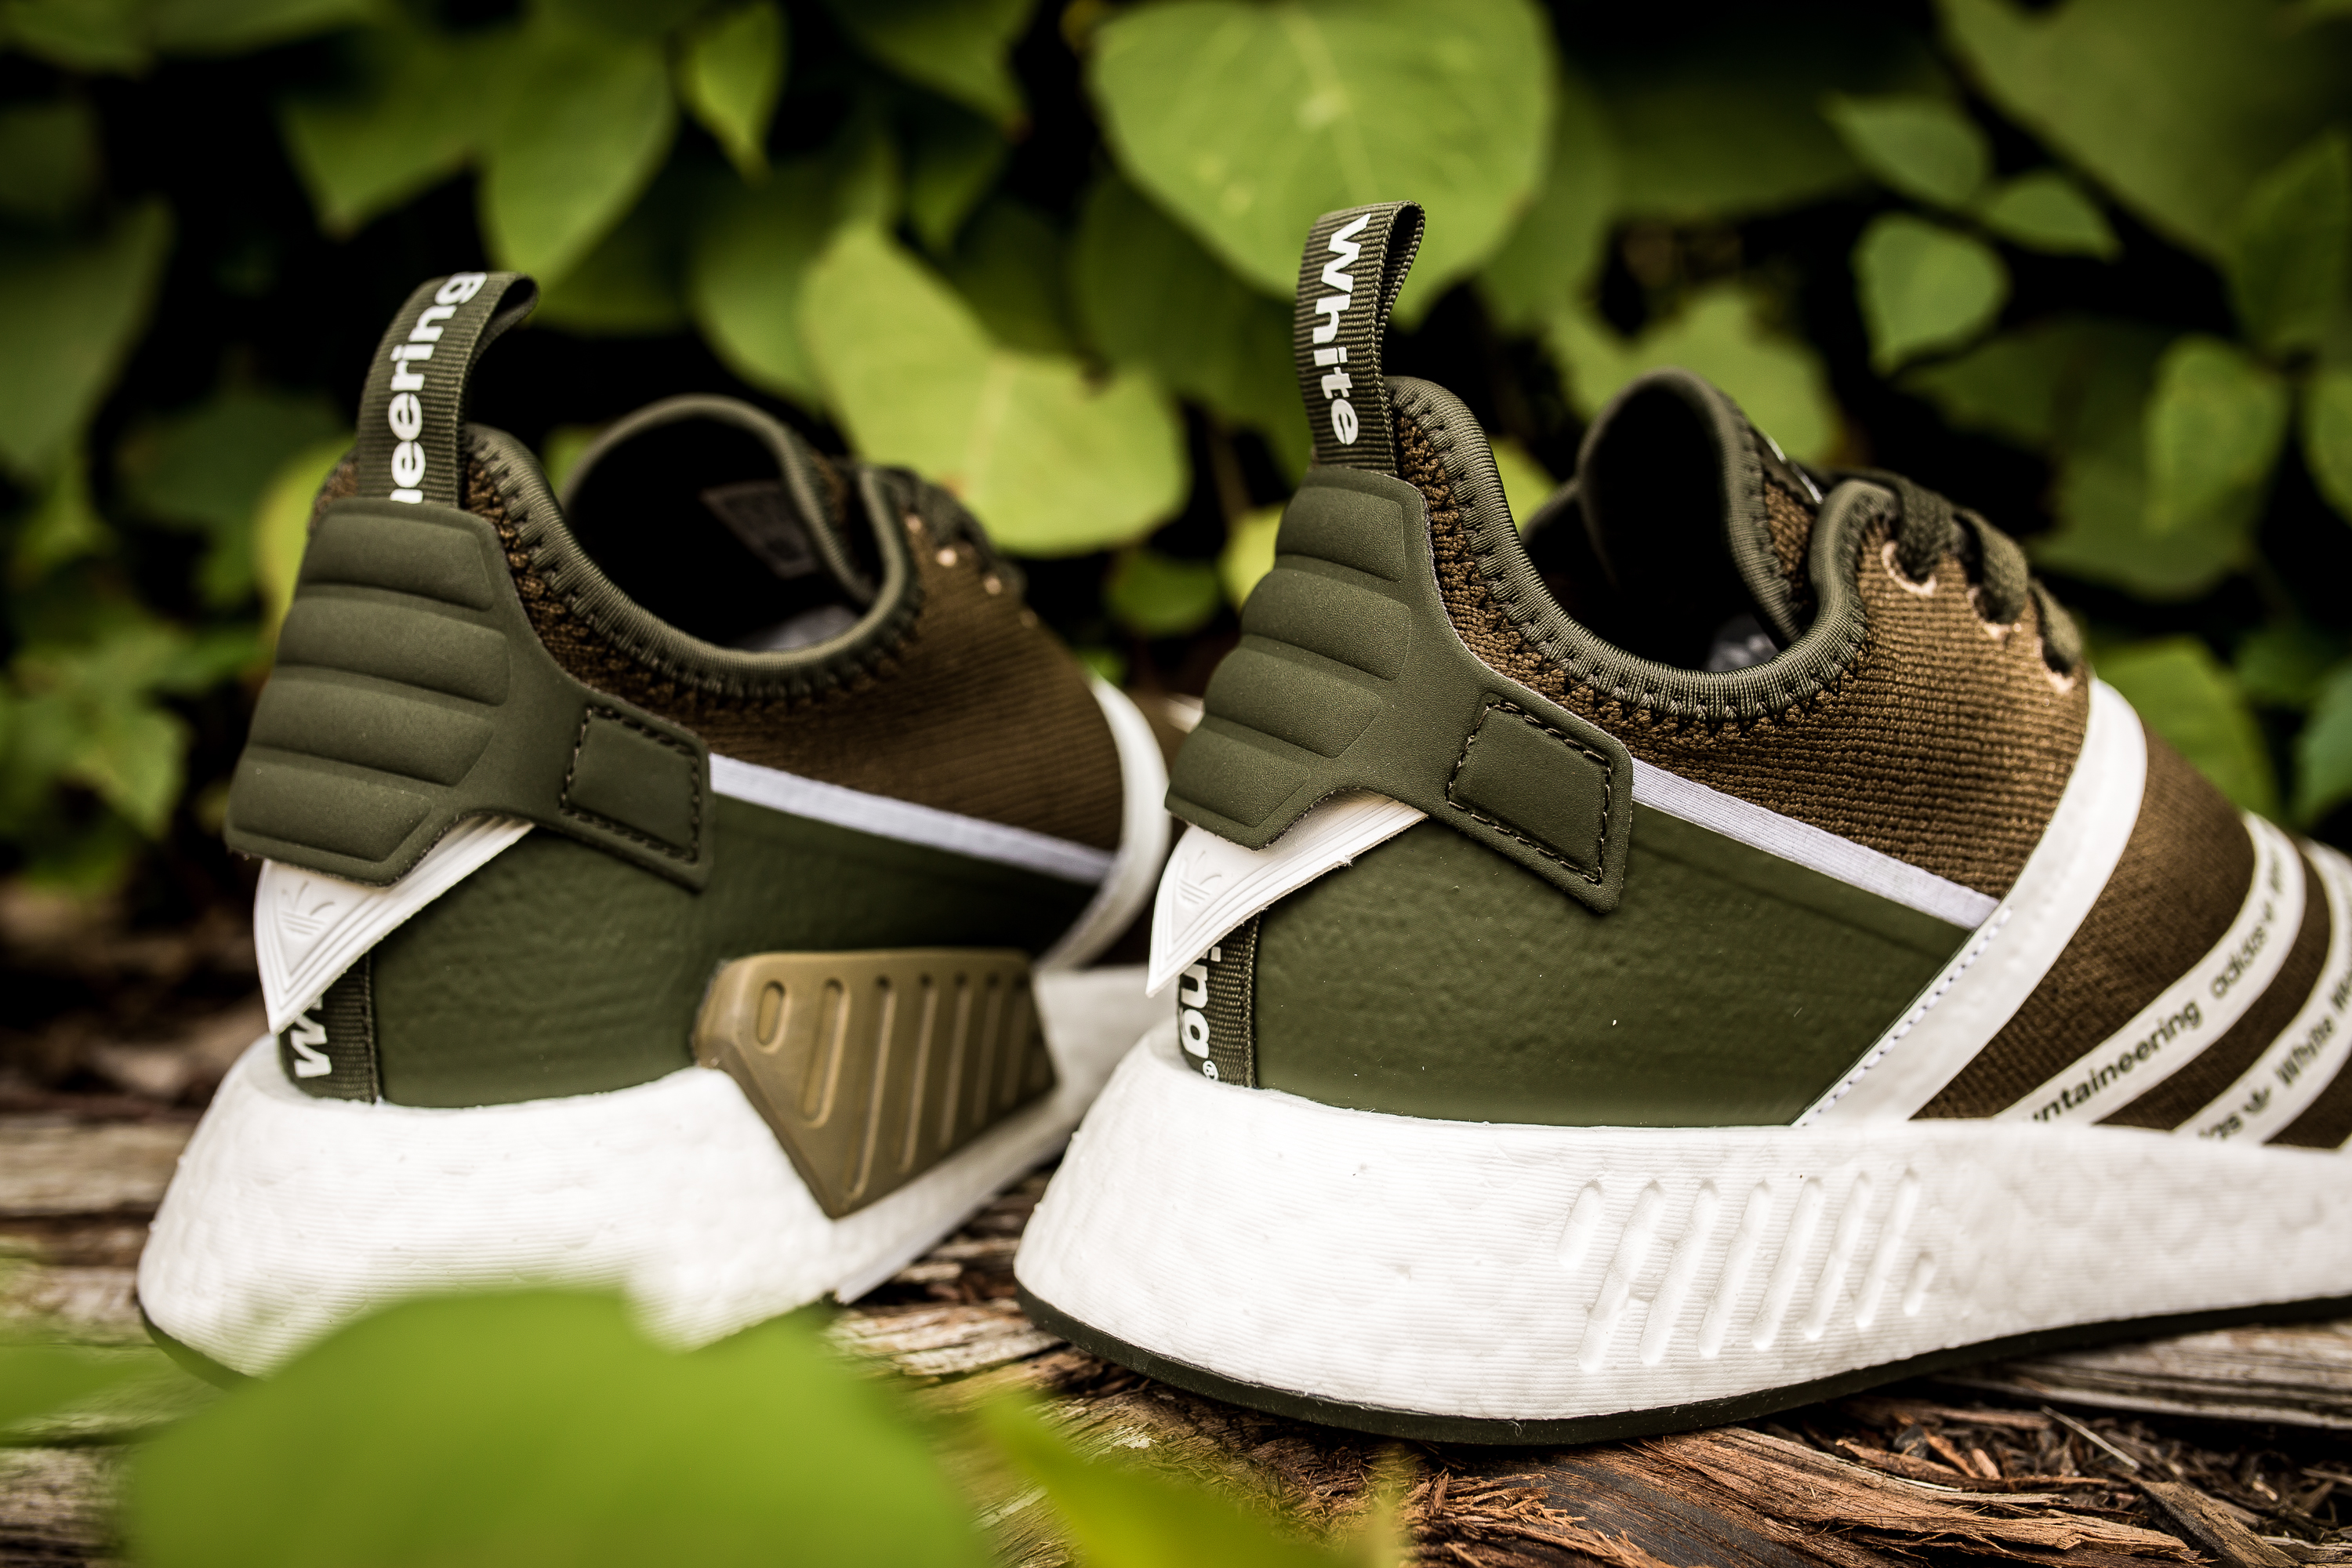 Packer Shoes X Adidas Nmd